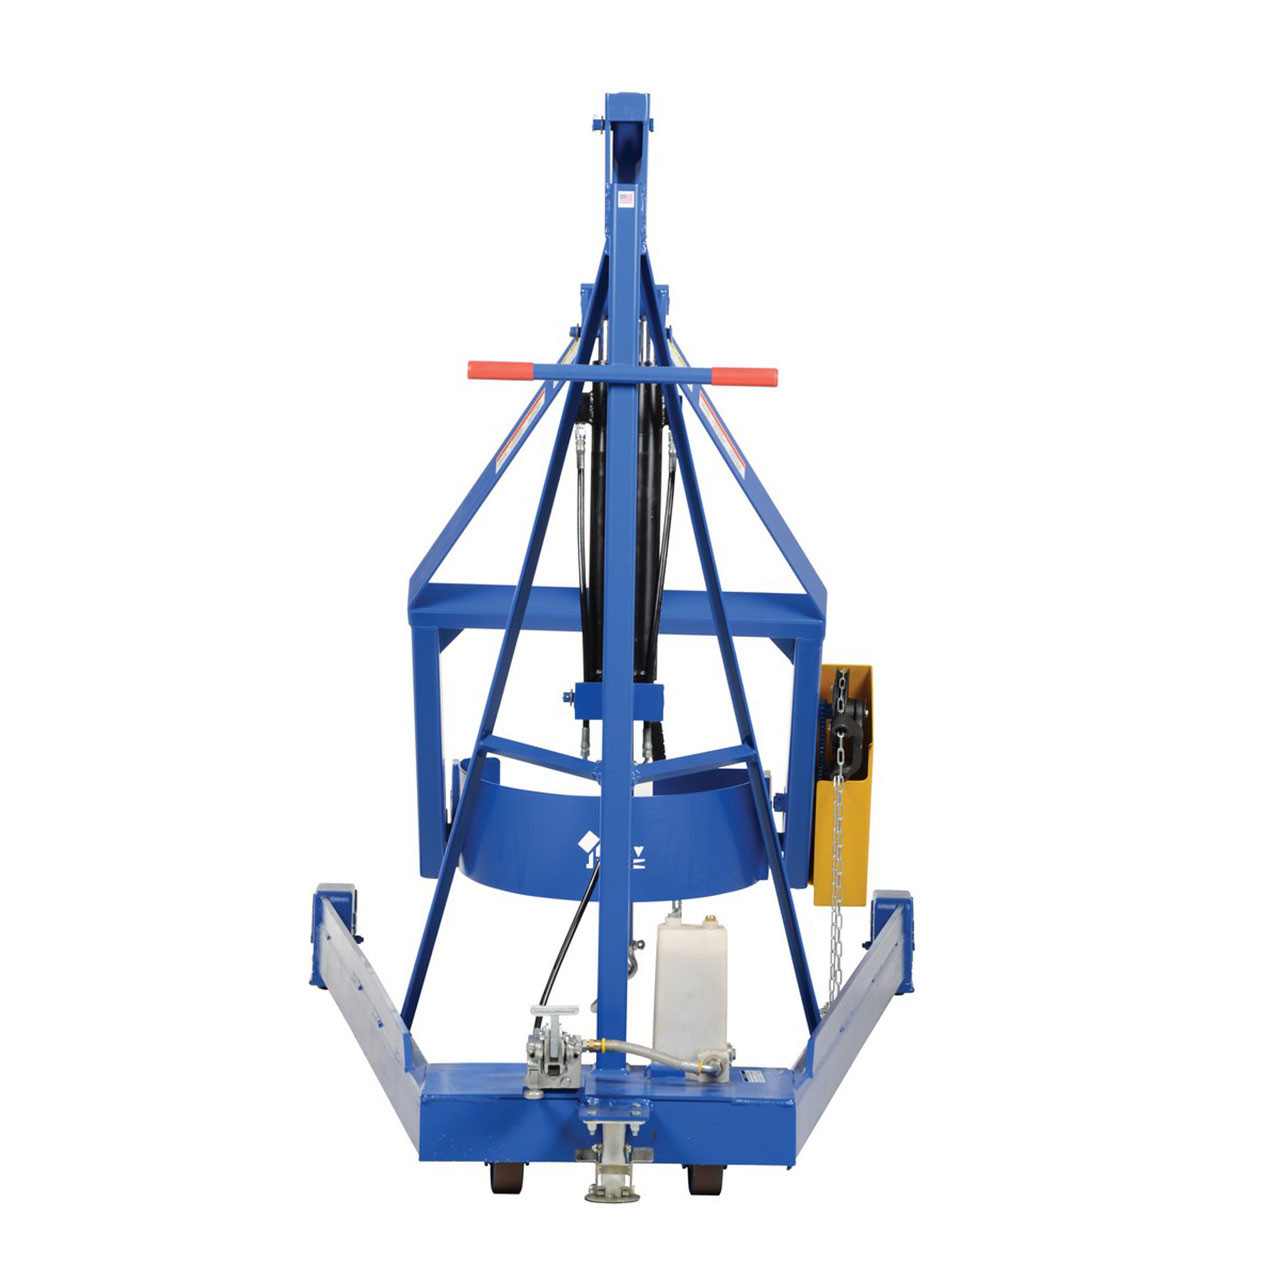 Hydraulic Drum Carrier/Rotator/Booms Rear View